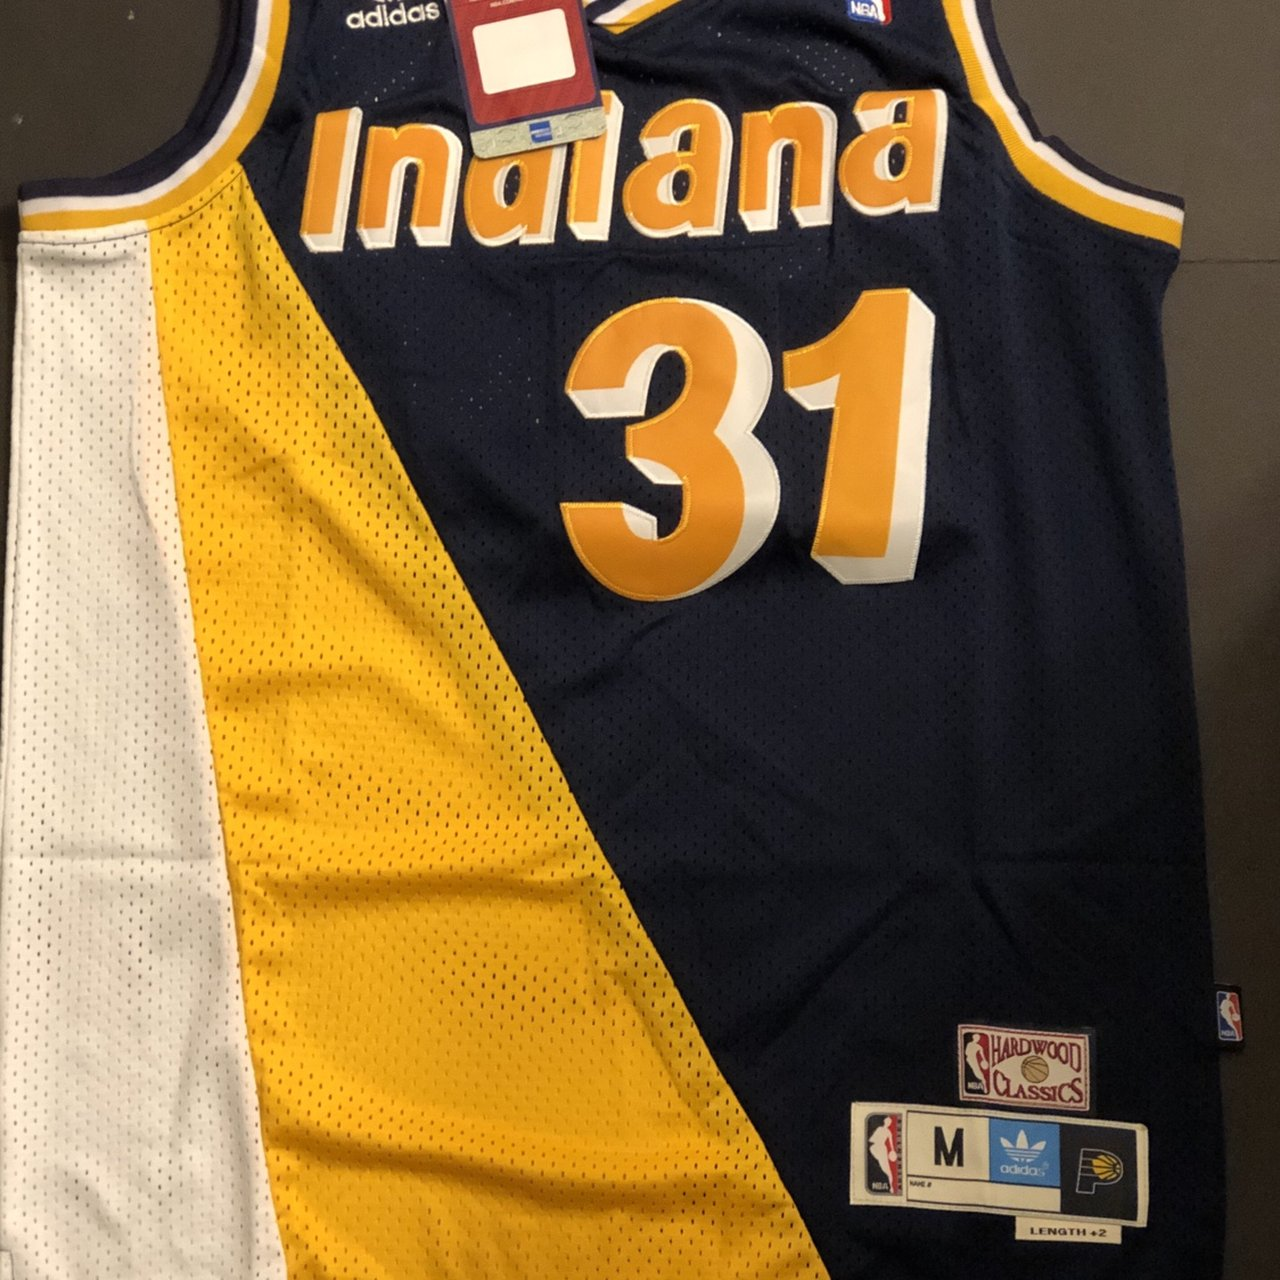 f940fb3c8c4 @throwedthreads. 11 days ago. Grand Prairie, United States. Had another one  of these as well. Throwback Basketball Jersey REGGIE MILLER 31 Indiana  Pacers ...